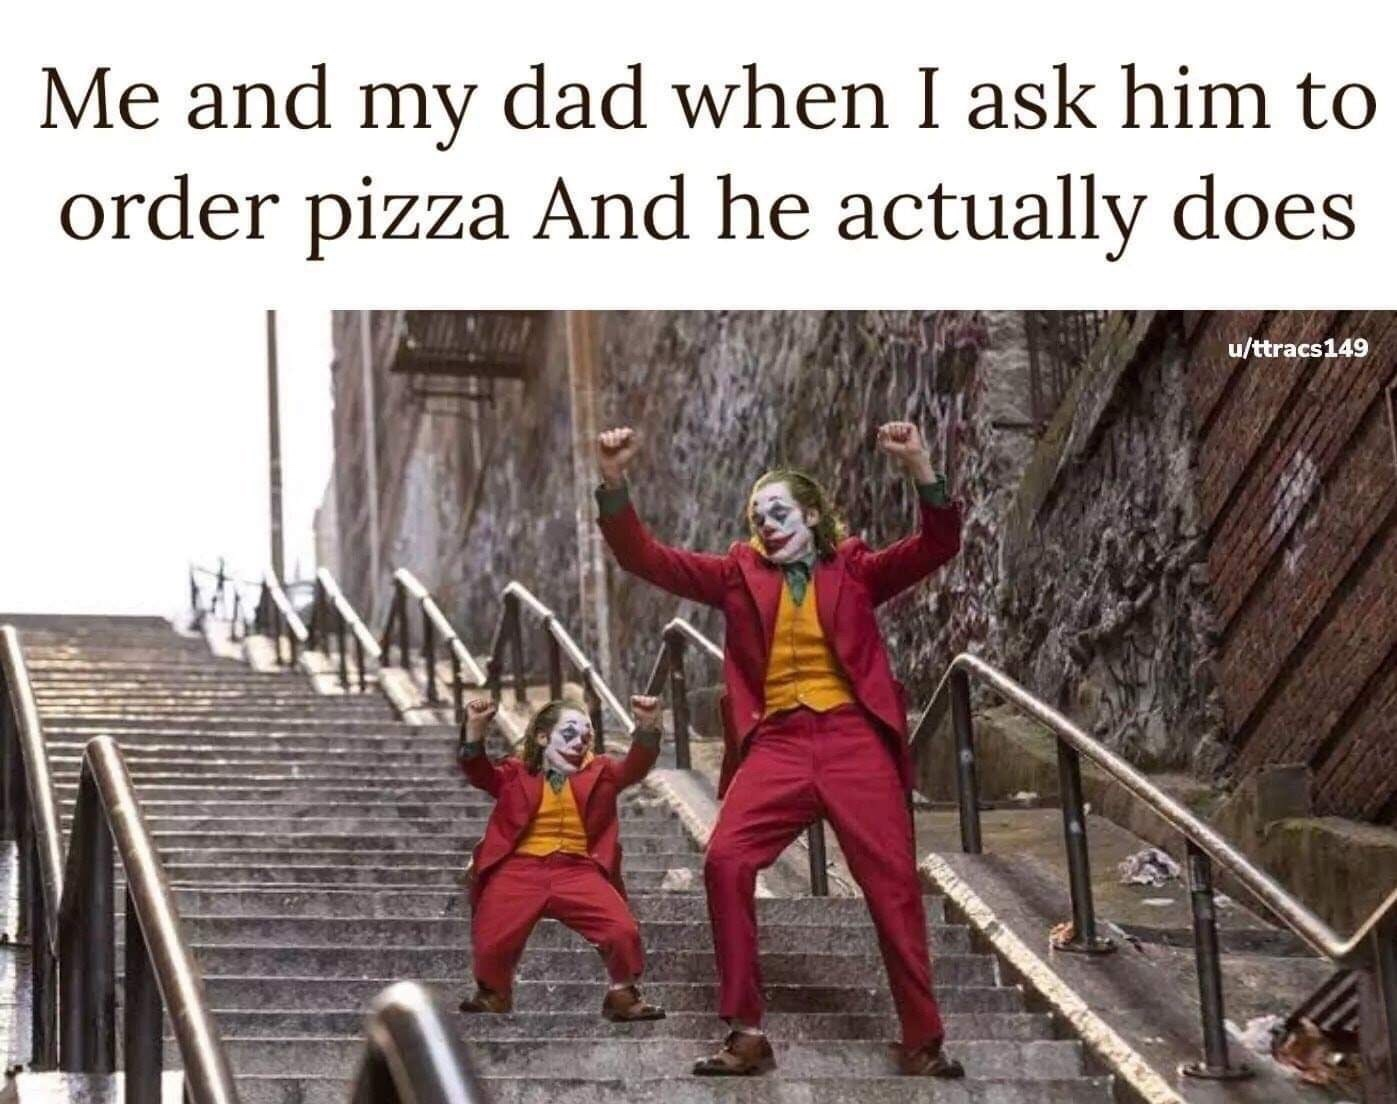 pizza time - meme